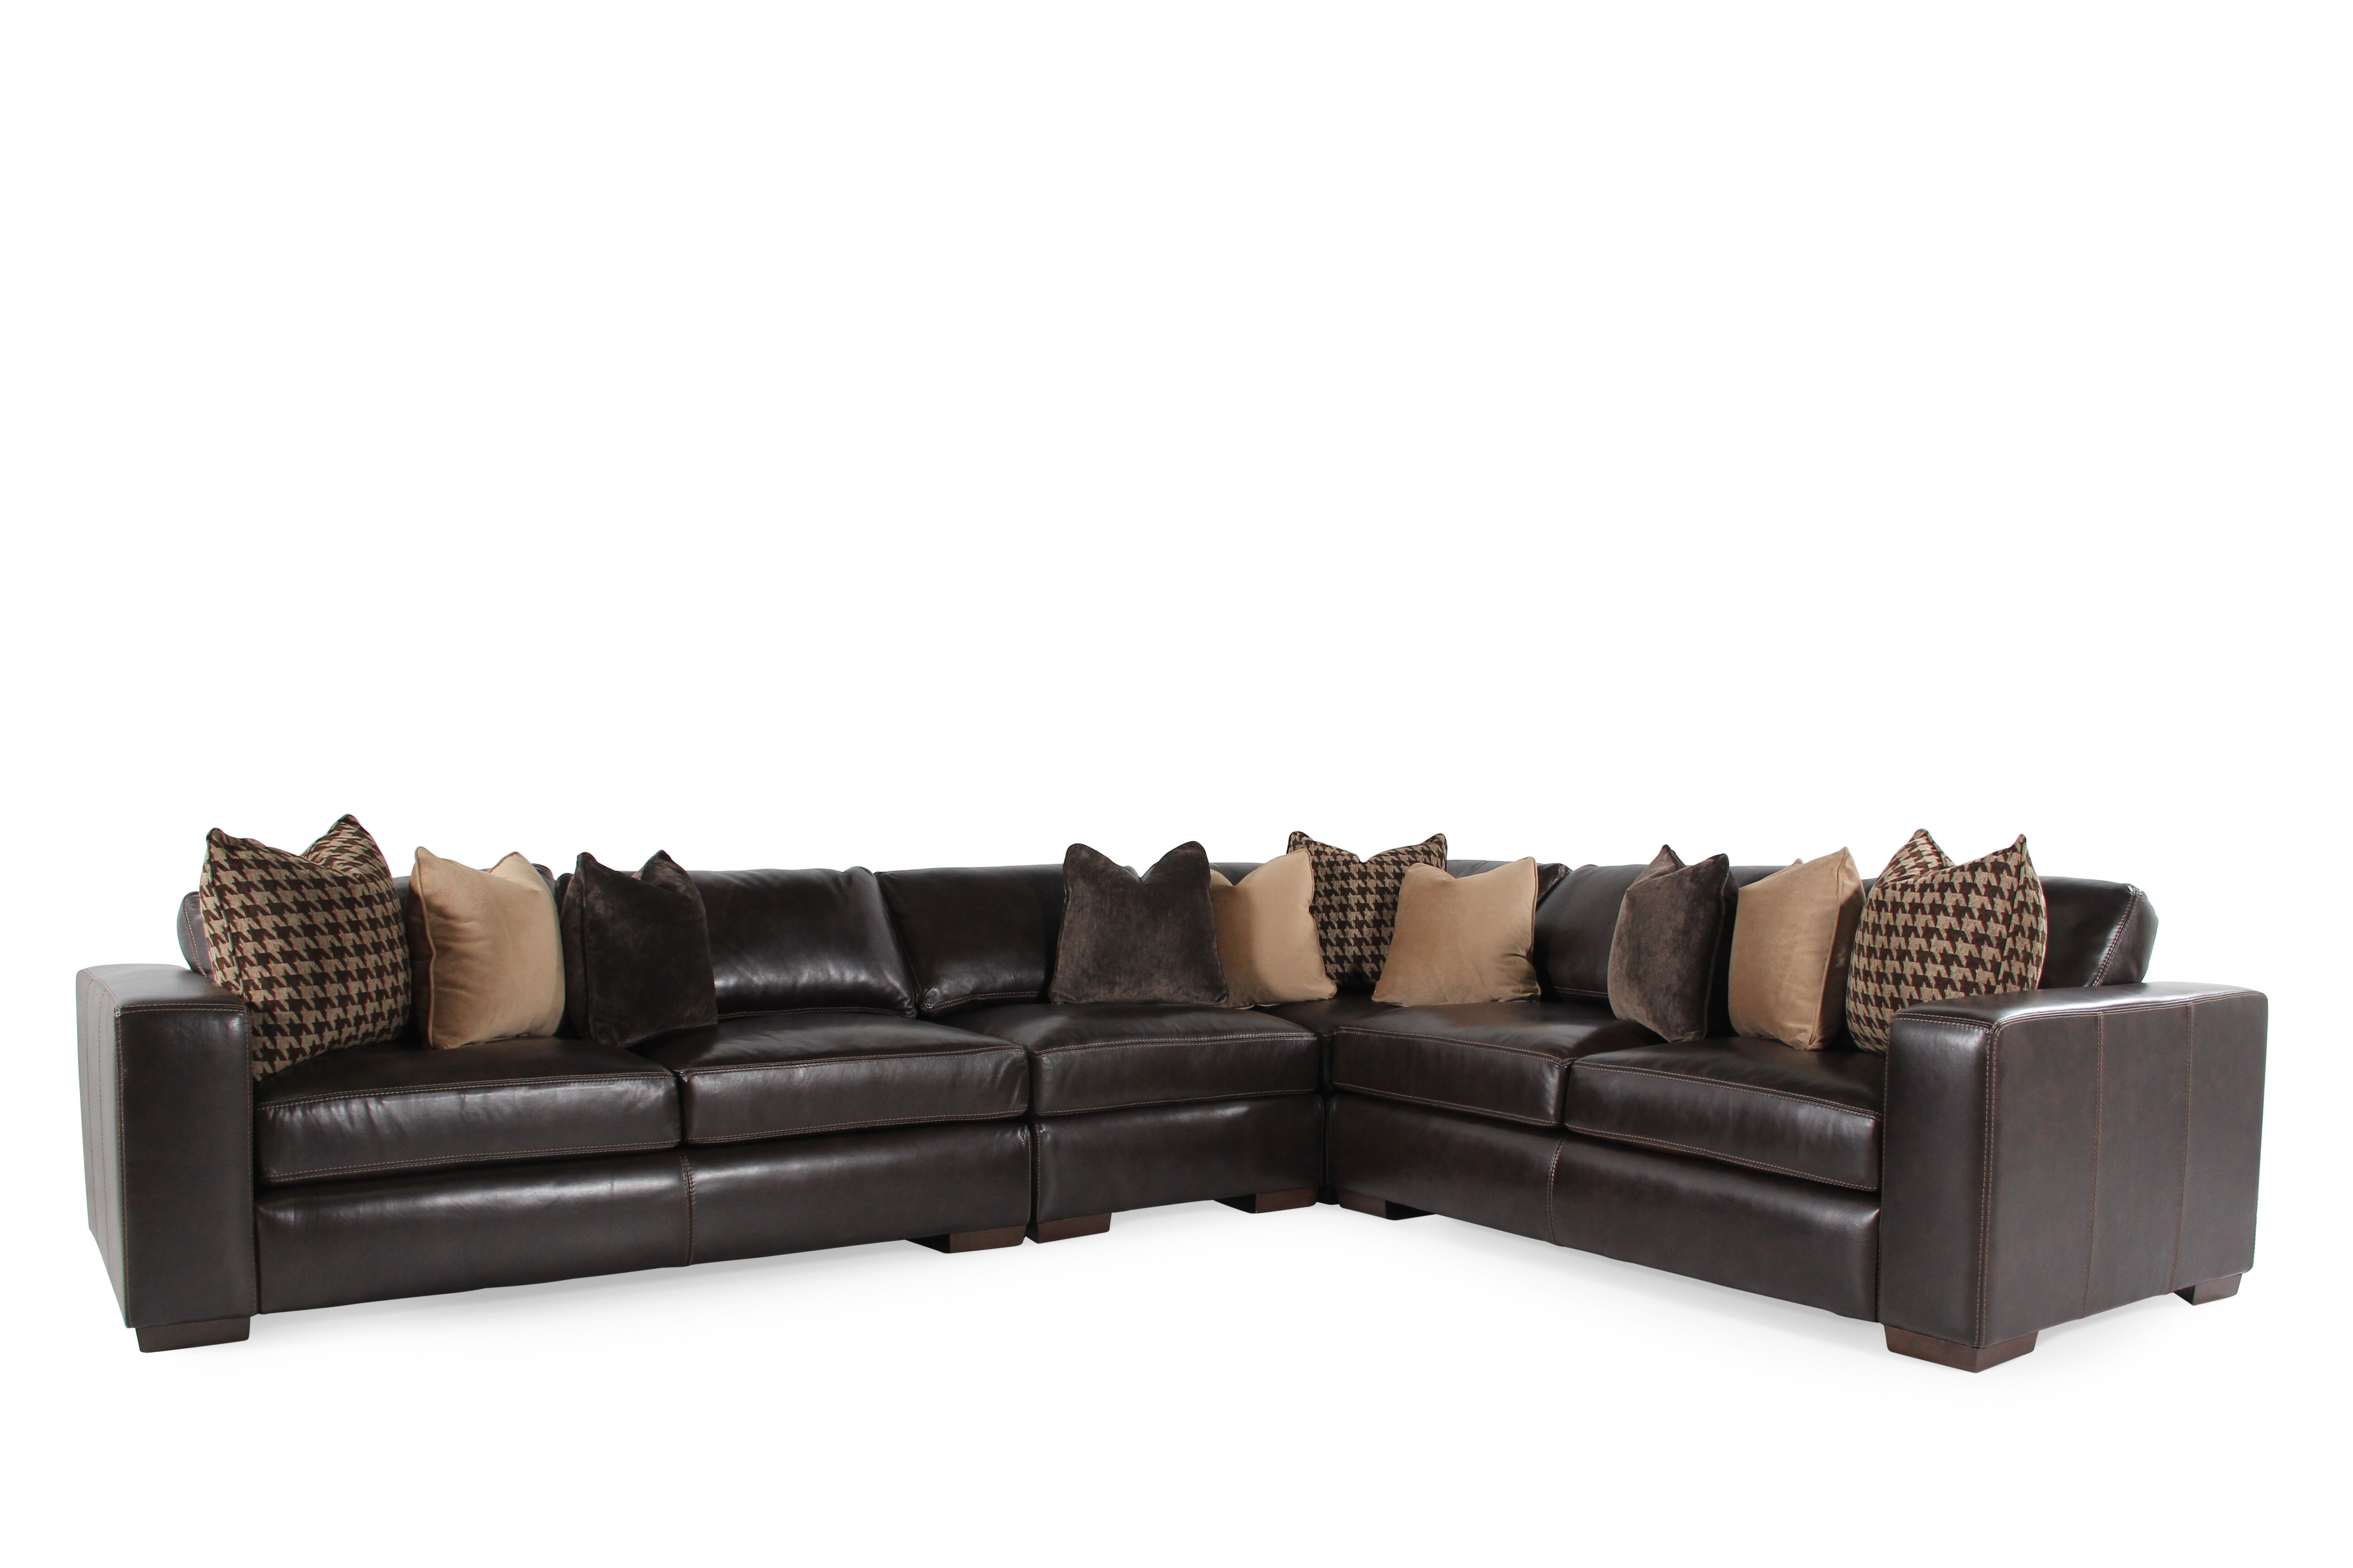 Bernhardt Dorian Leather Sectional  sc 1 st  Mathis Brothers : bernhardt sectional sofa - Sectionals, Sofas & Couches